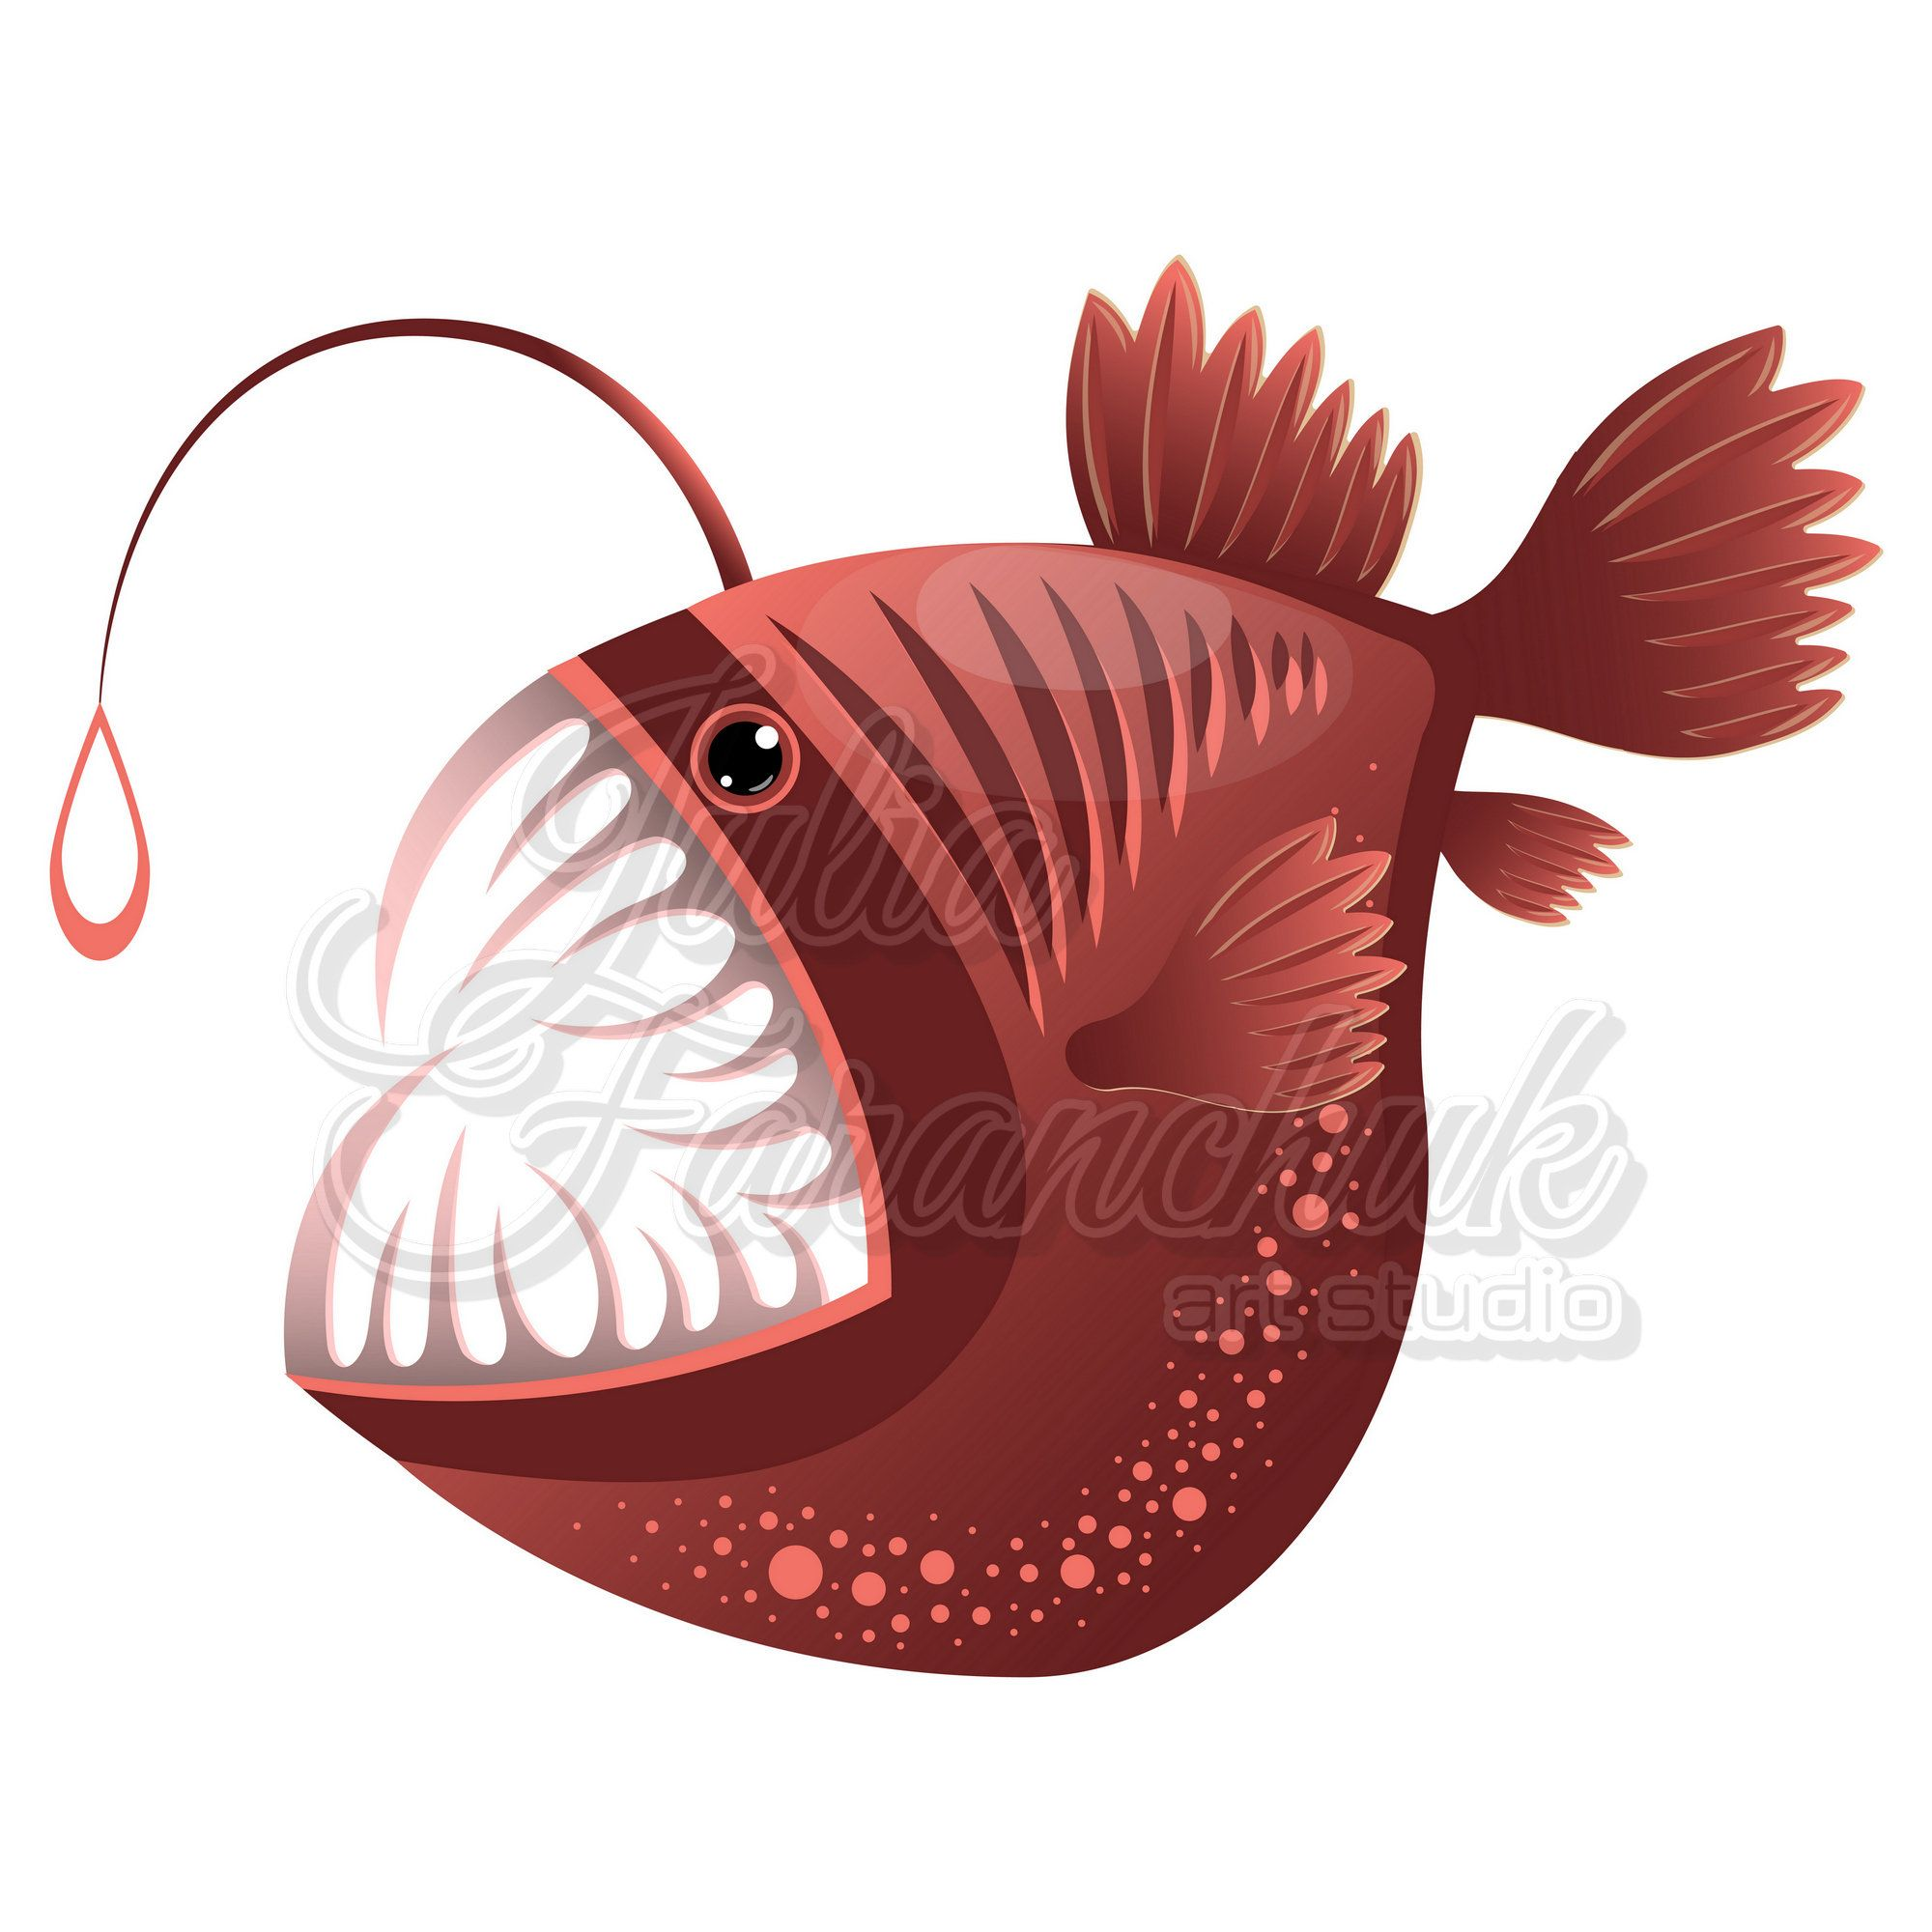 Excited To Share The Latest Addition To My Etsy Shop Fish Clipart Lophius Piscatorius Vector Illustration Fish Svg Eps Jpg Png Svg Digital Good Htt